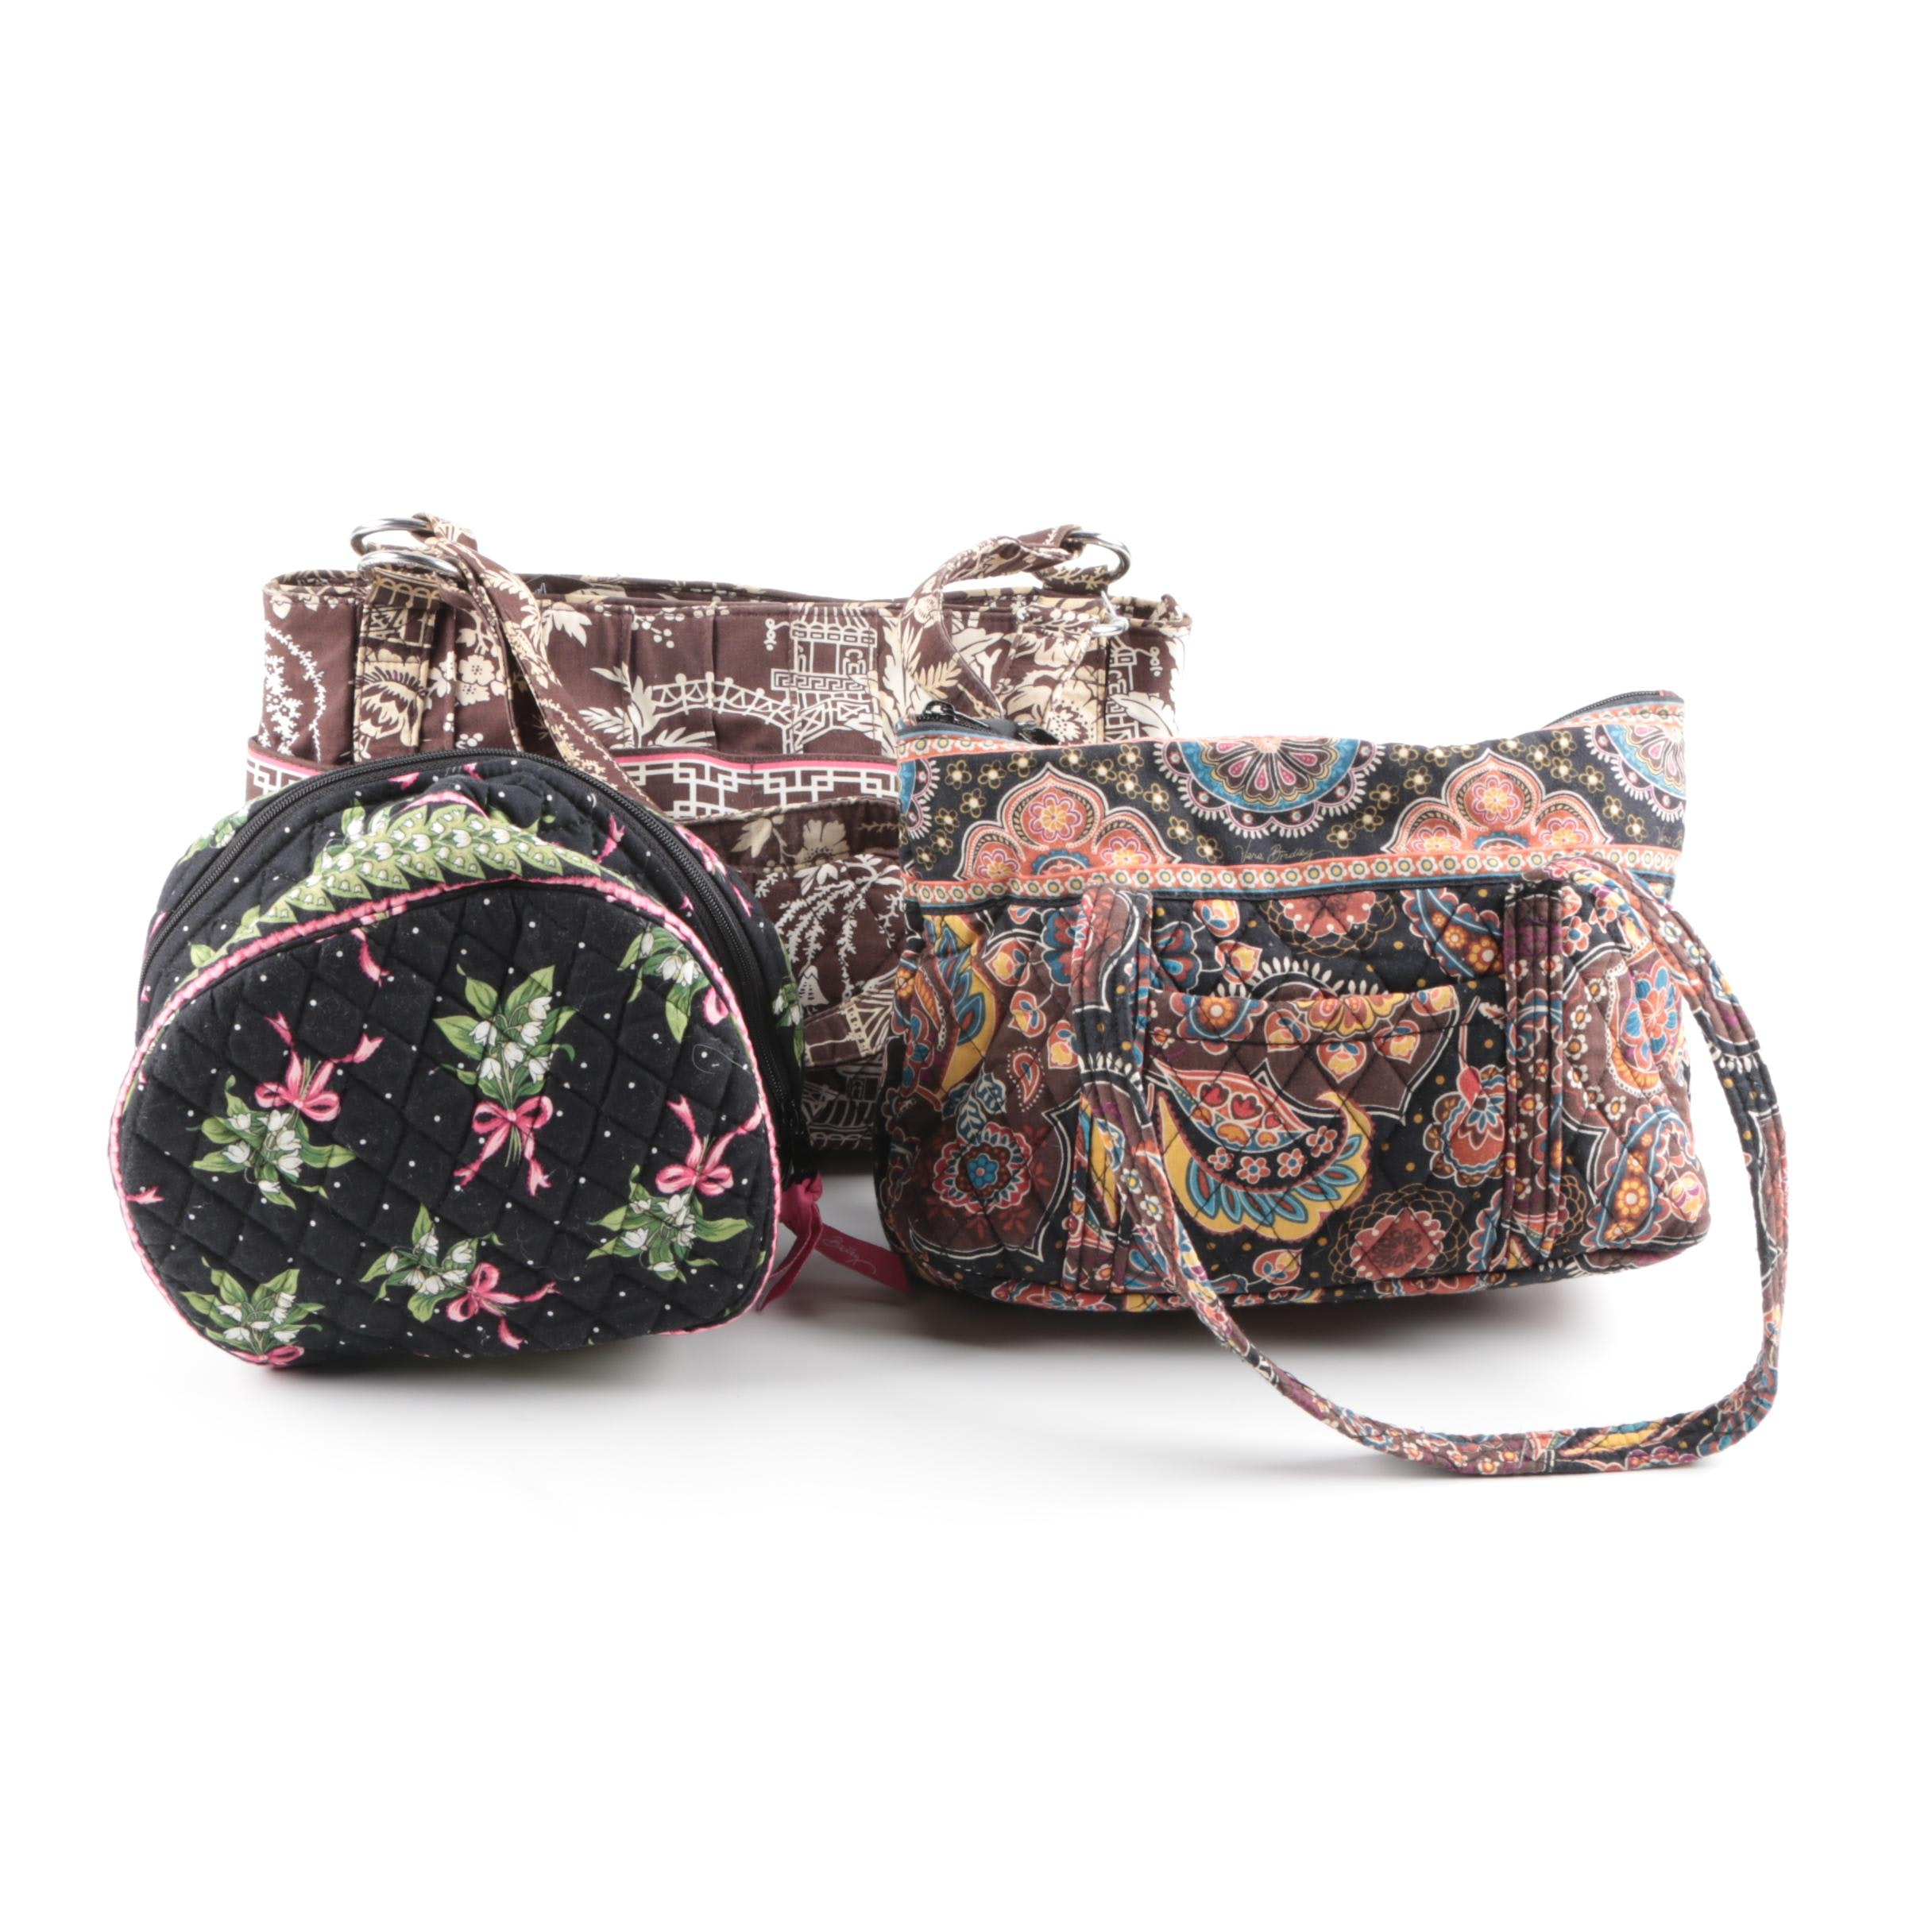 Vera Bradley Handbags and Pouch